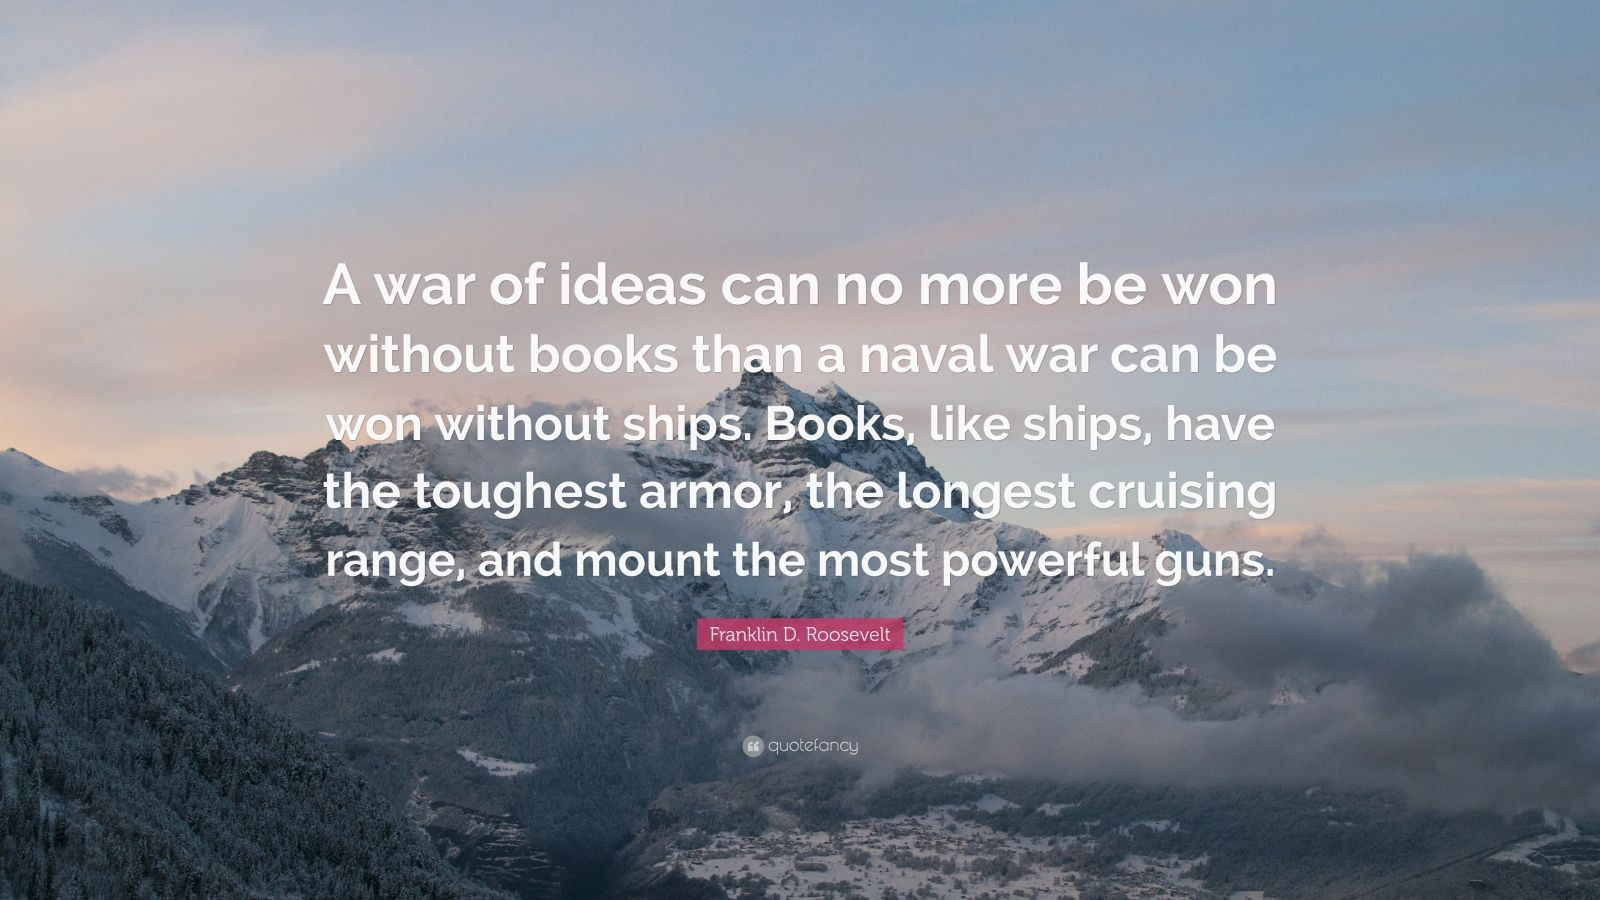 "Franklin D. Roosevelt Quote: ""A war of ideas can no more be won without books than a naval war can be won without ships. Books, like ships, have the toughest armor, the longest cruising range, and mount the most powerful guns."""